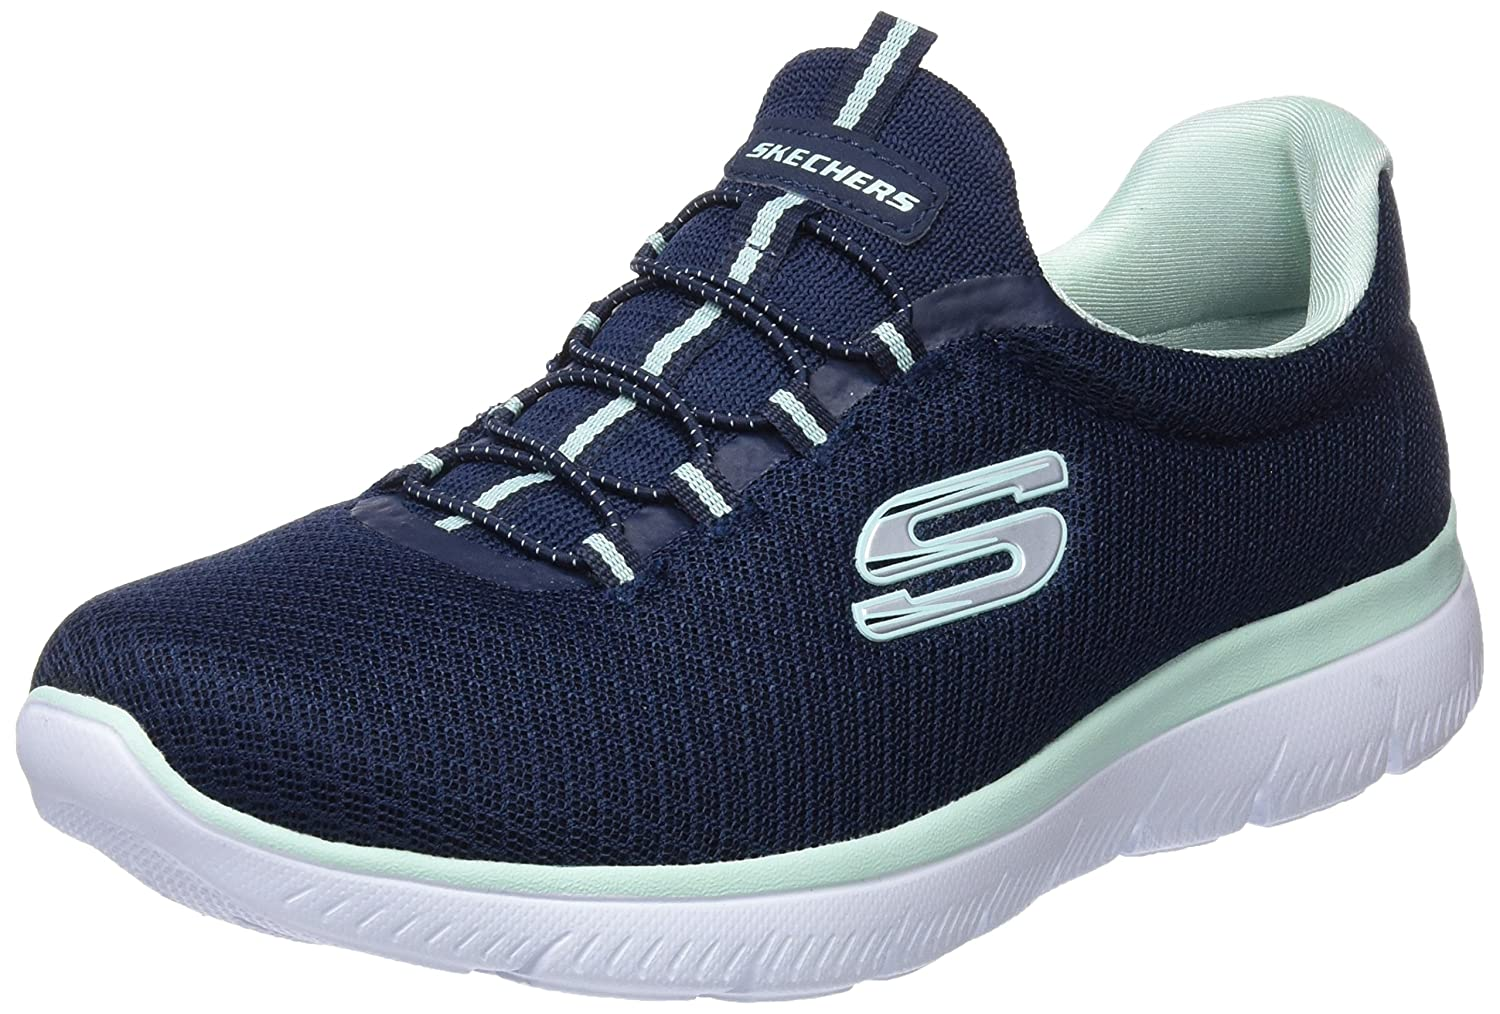 1e46688d6886 Skechers Women s Summits-Quick Getaway Trainers  Amazon.co.uk  Shoes   Bags